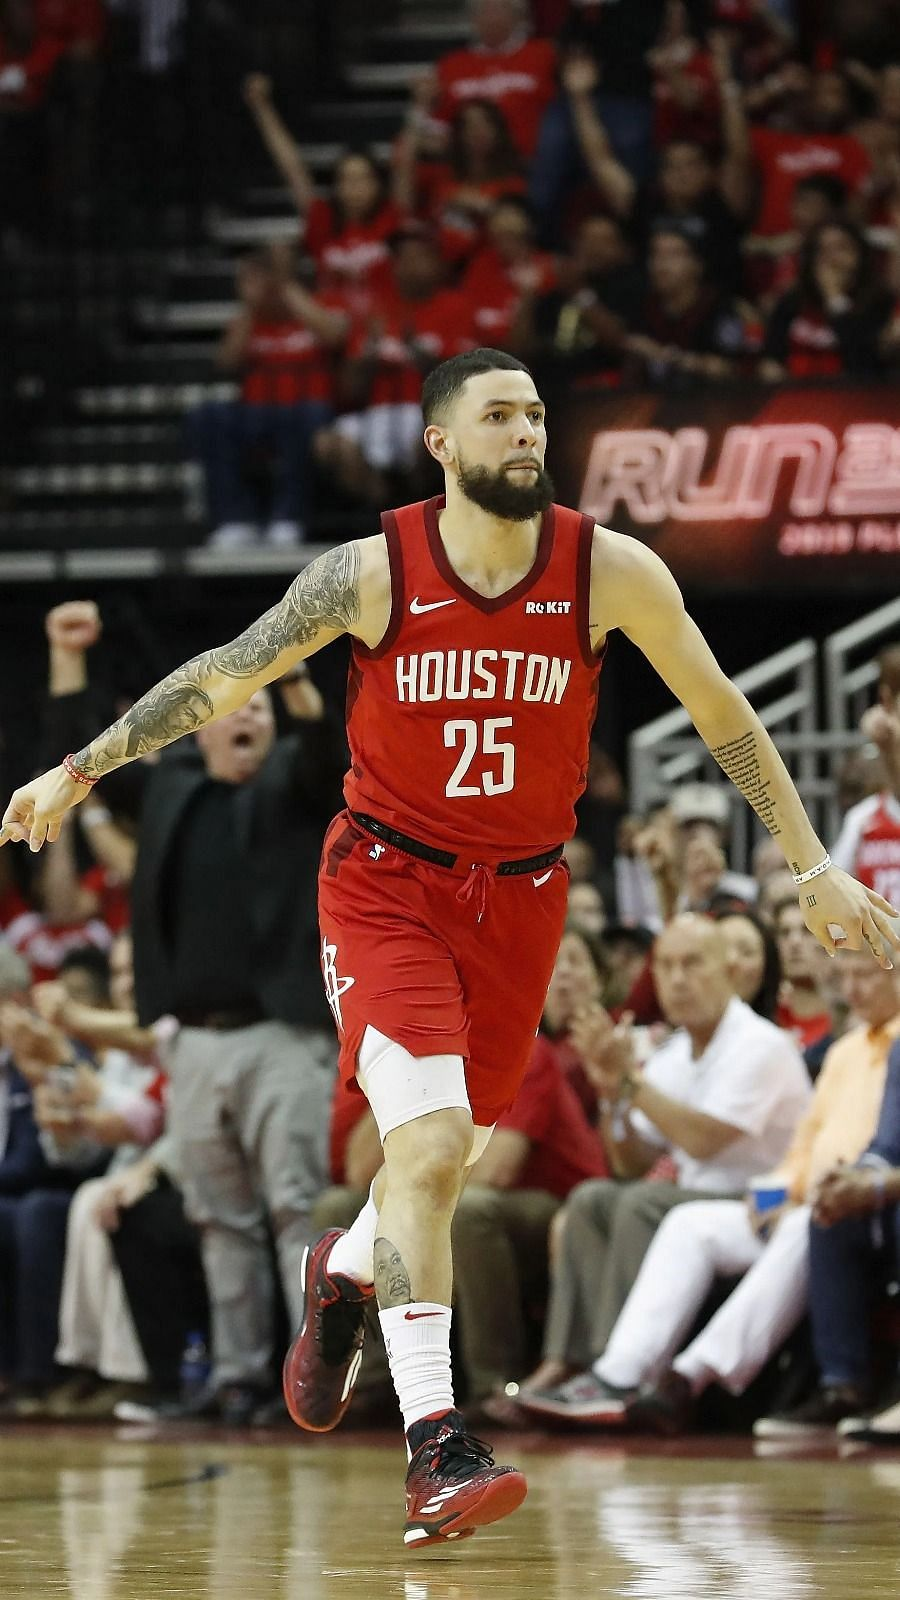 Nba Trade Rumors New York Knicks Now Negotiating With The Houston Rockets To Acquire Austin Rivers In A Sign And Trade